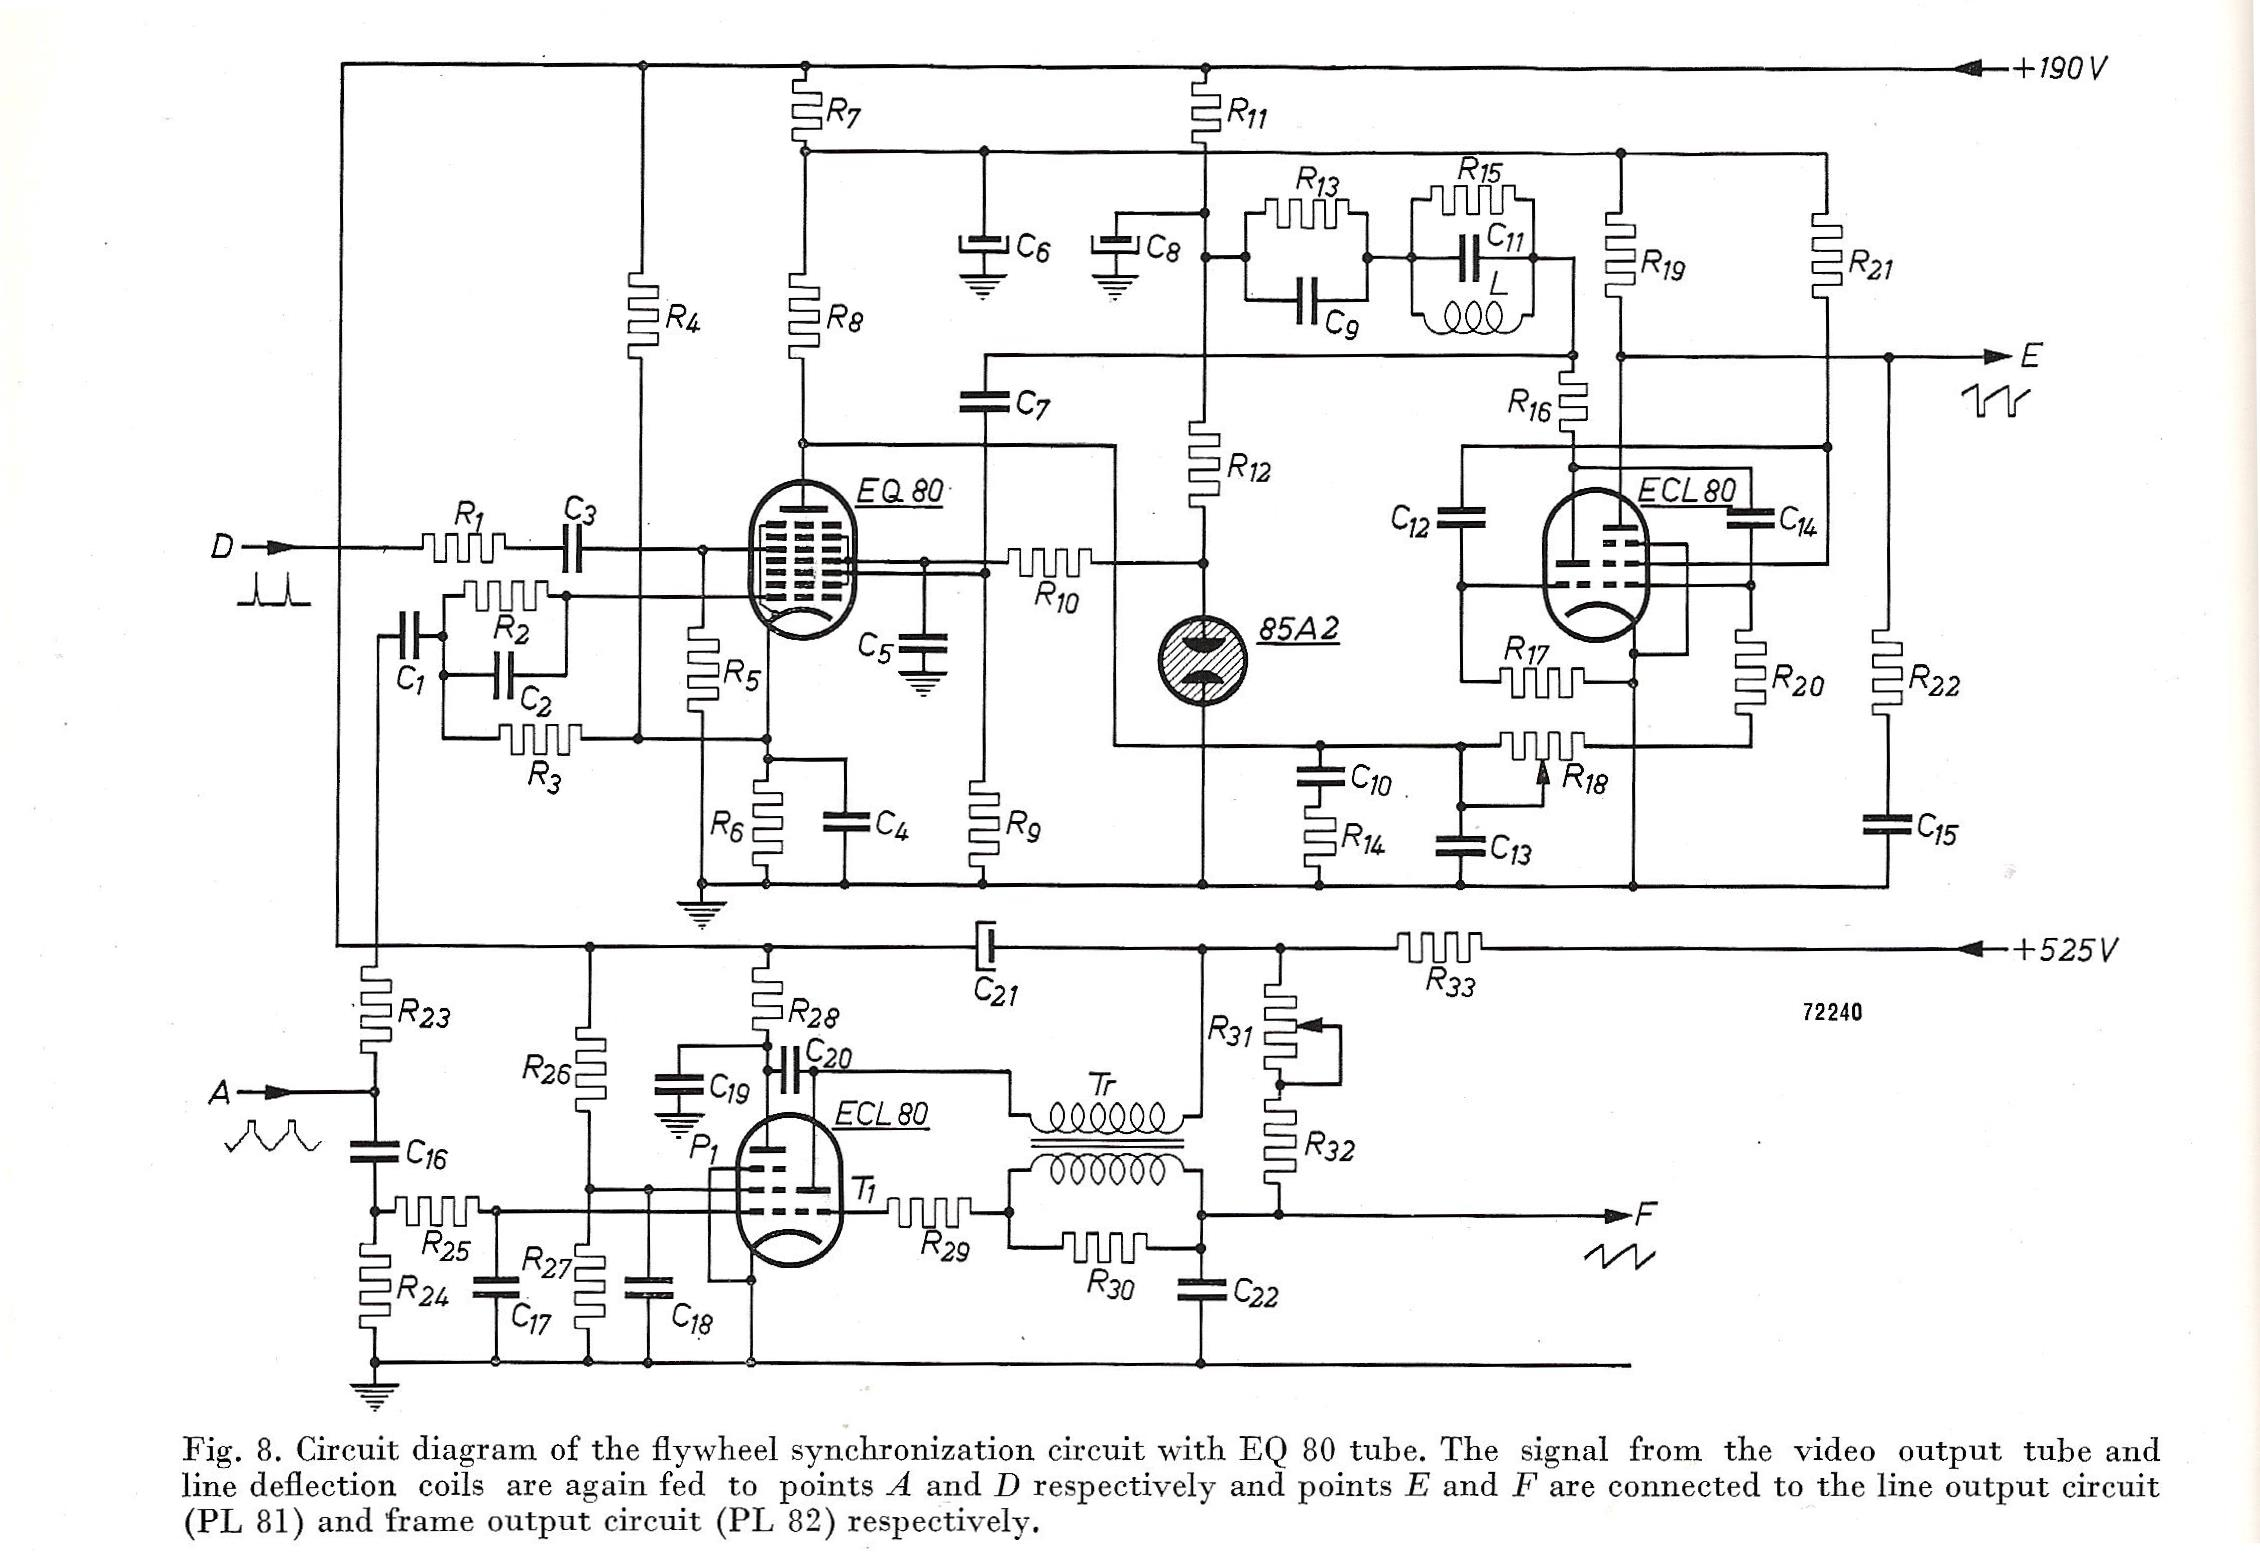 EAB_1952_EQ80_Flywheel_synchronization_3 horstmann centaurplus c17 wiring diagram schematic circuit diagram horstmann centaurplus c17 wiring diagram at gsmx.co